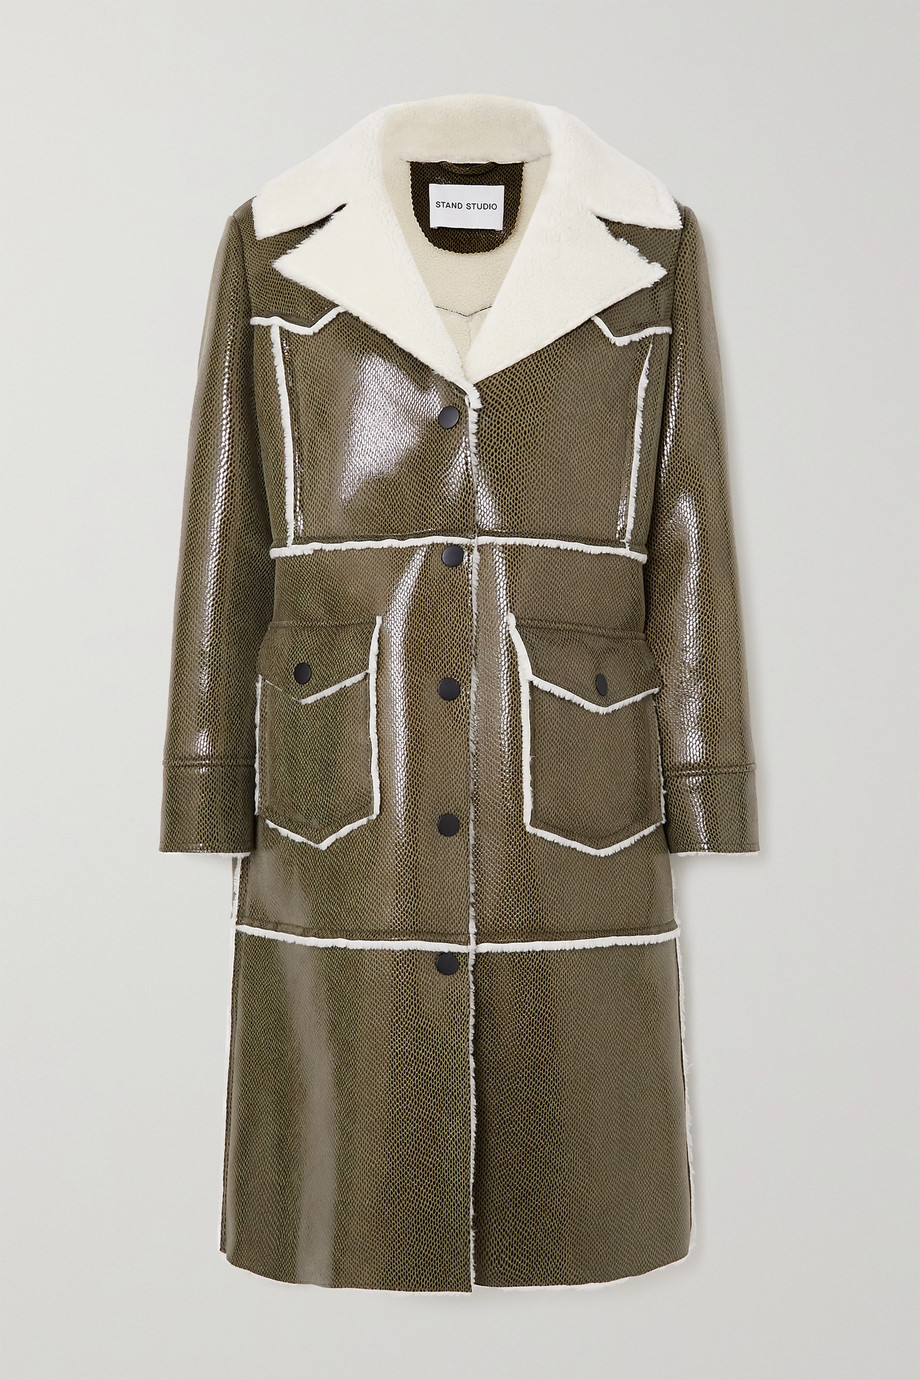 STAND STUDIO Adele faux shearling-trimmed snake-effect faux patent-leather coat